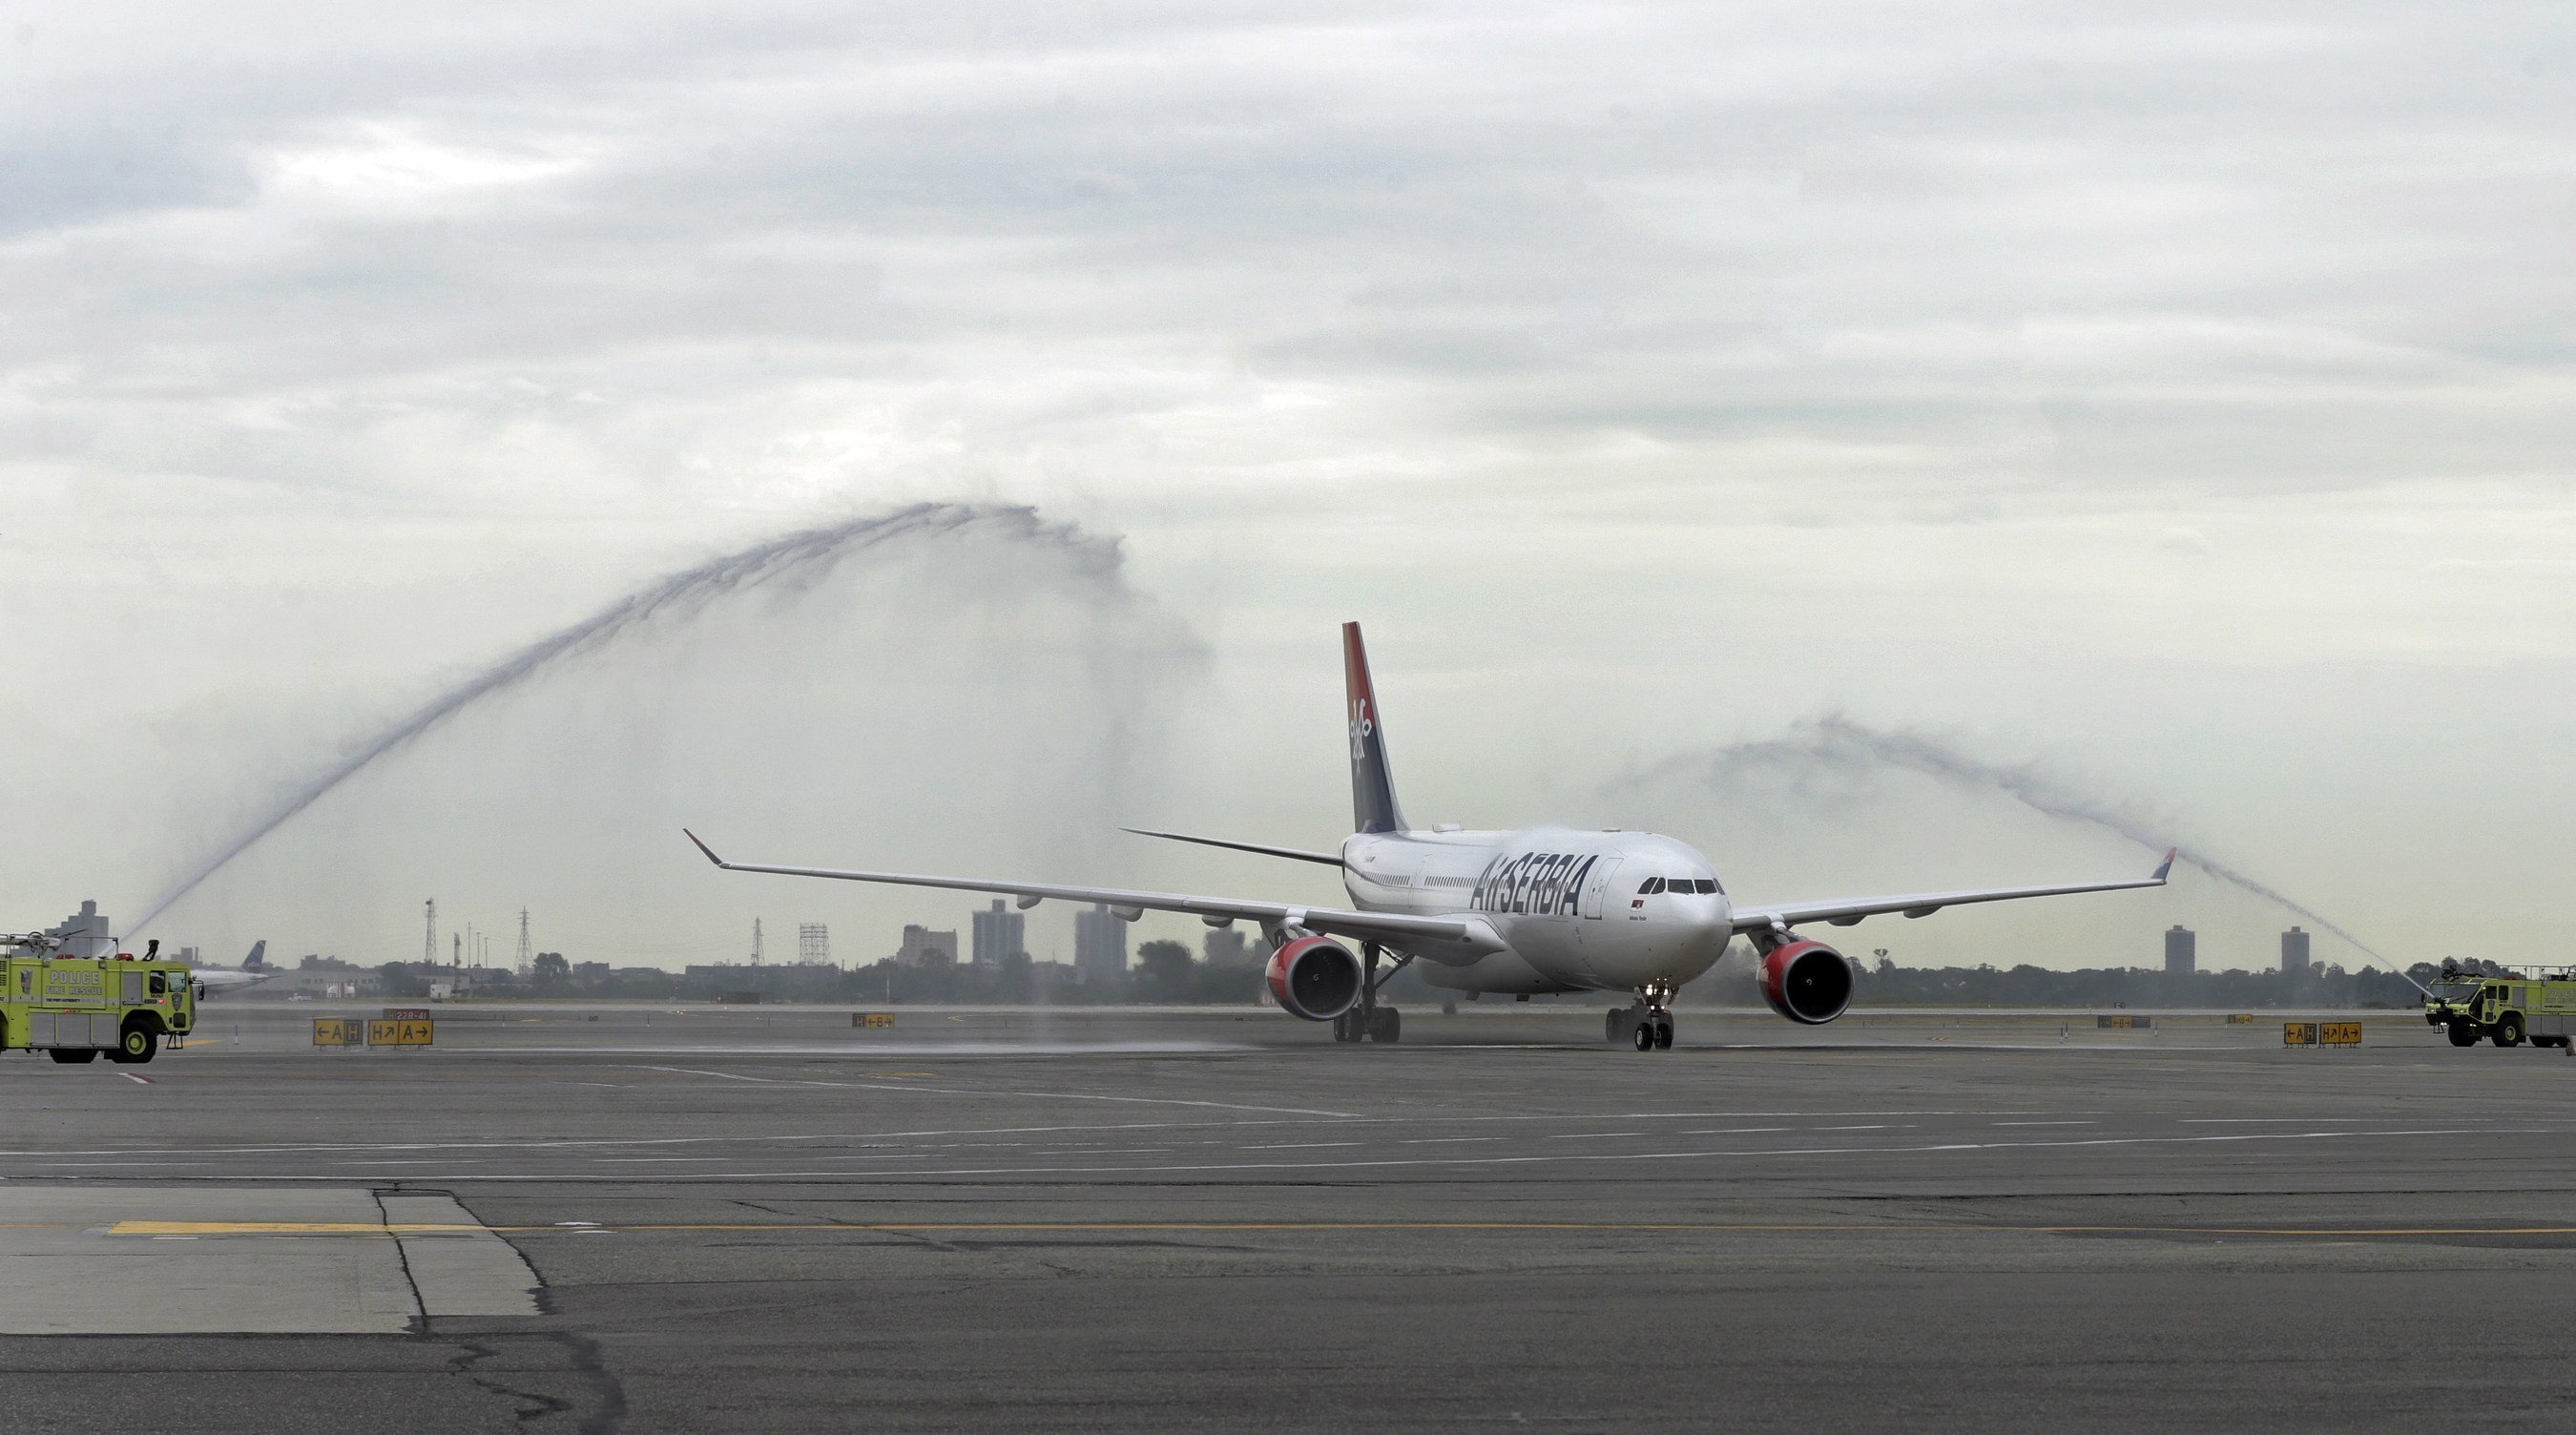 Air Serbia's inaugural service from Belgrade to New York, flight JU 500, is welcomed to JFK International Airport with a water-cannon salute.